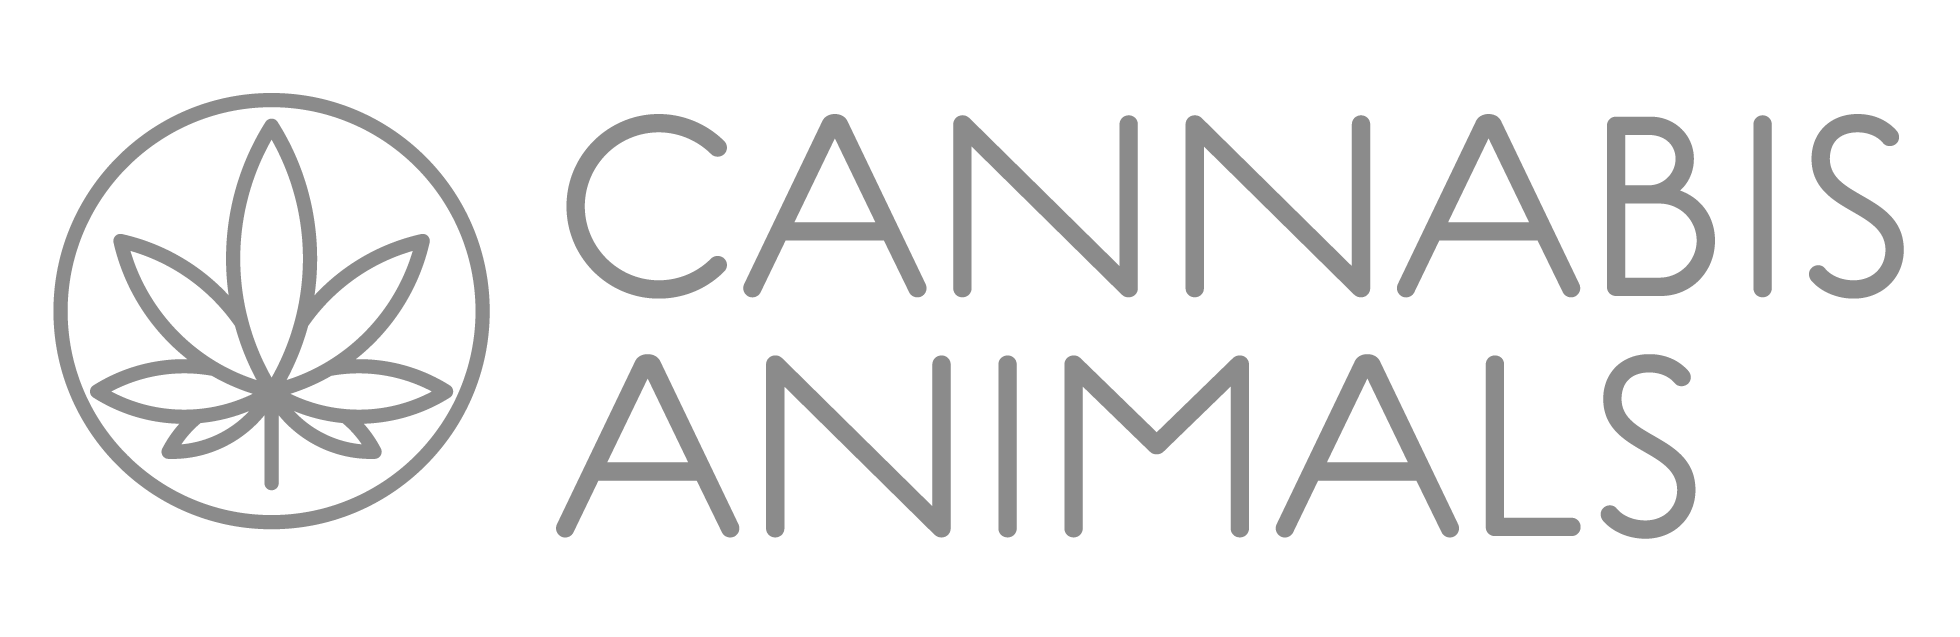 Cannabis Animals - logo